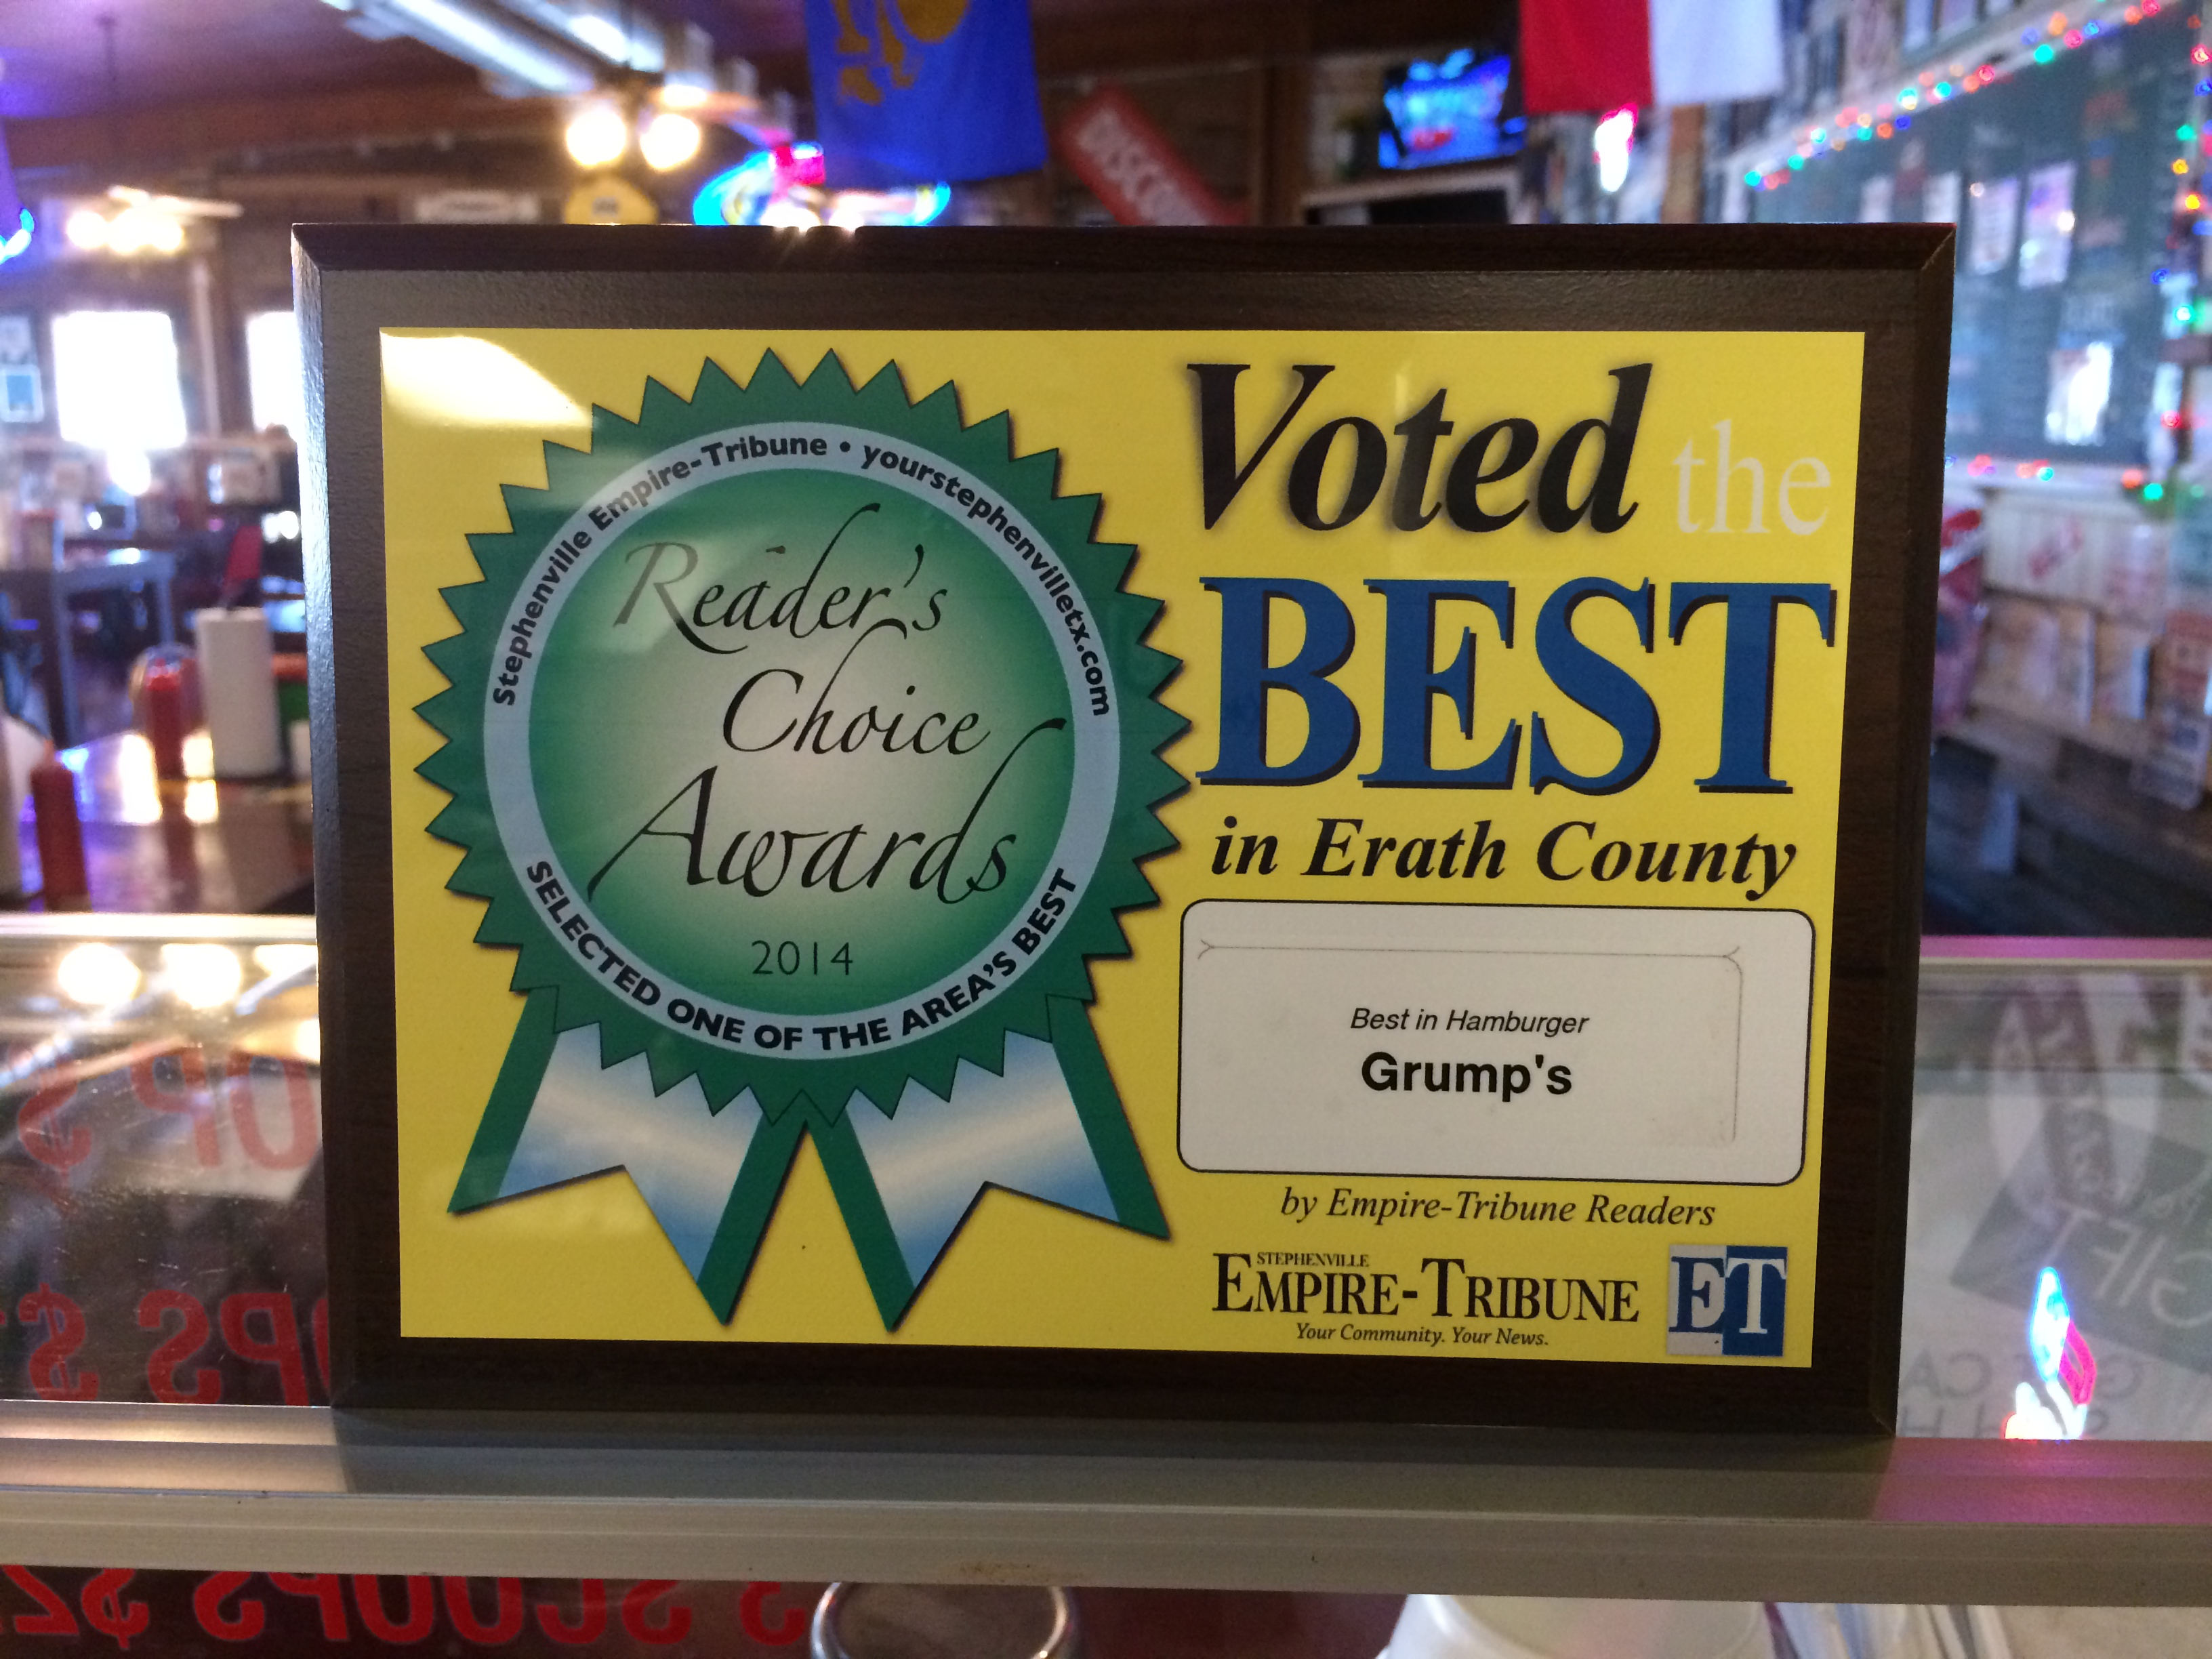 Voted Best of Erath County!